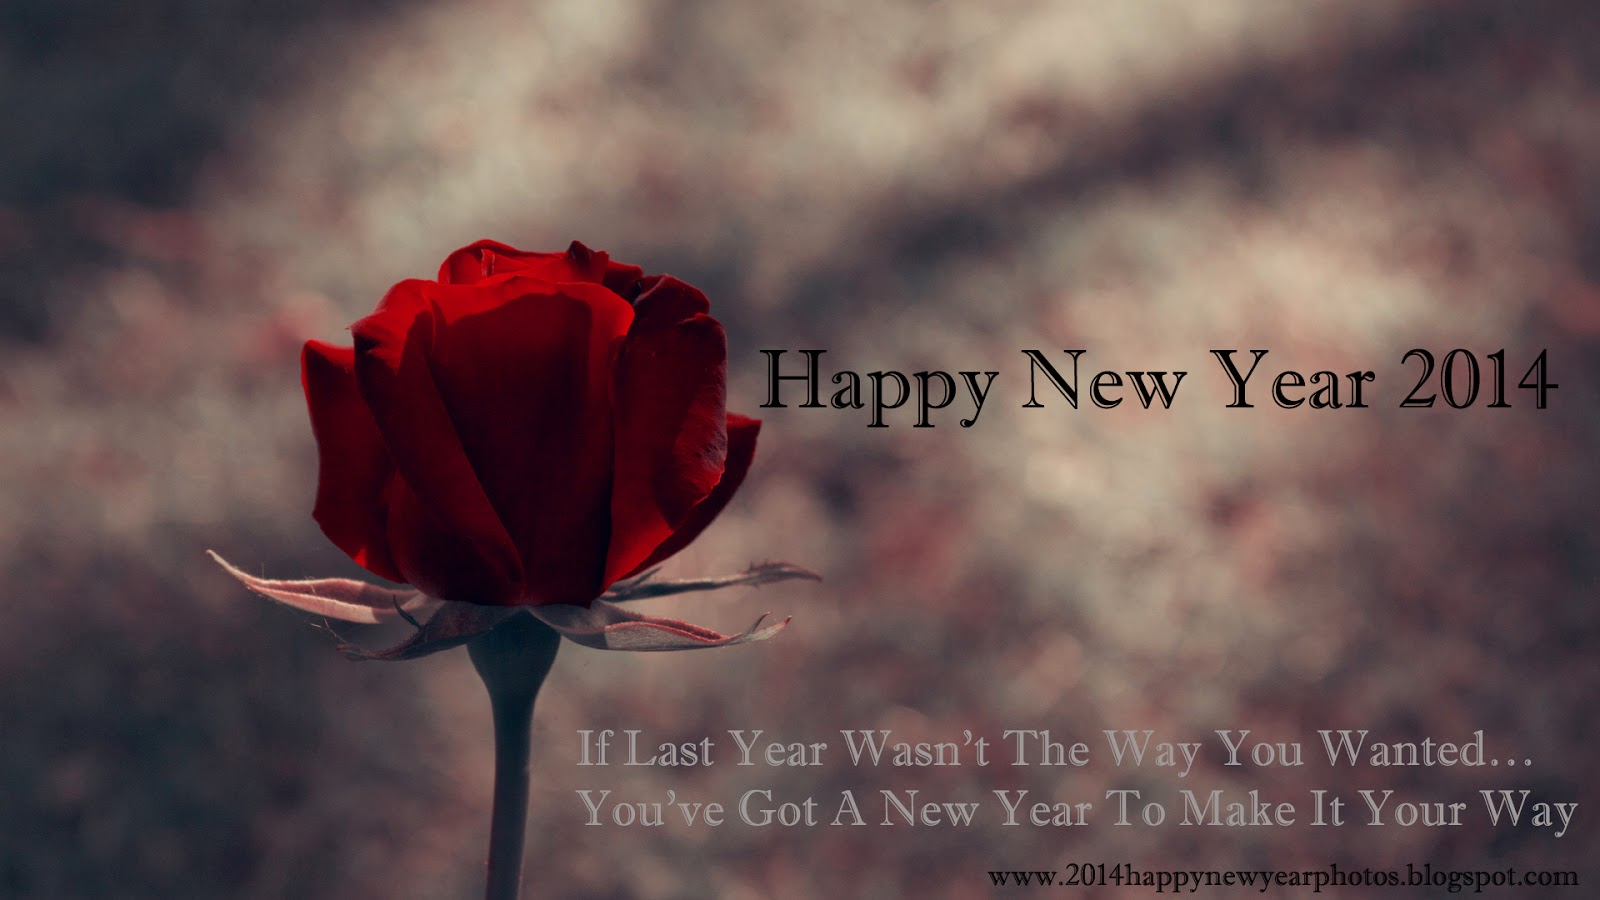 New Year Poems Happy New Year 2014 Wishes Quotes: Beautiful Happy New Year Poems